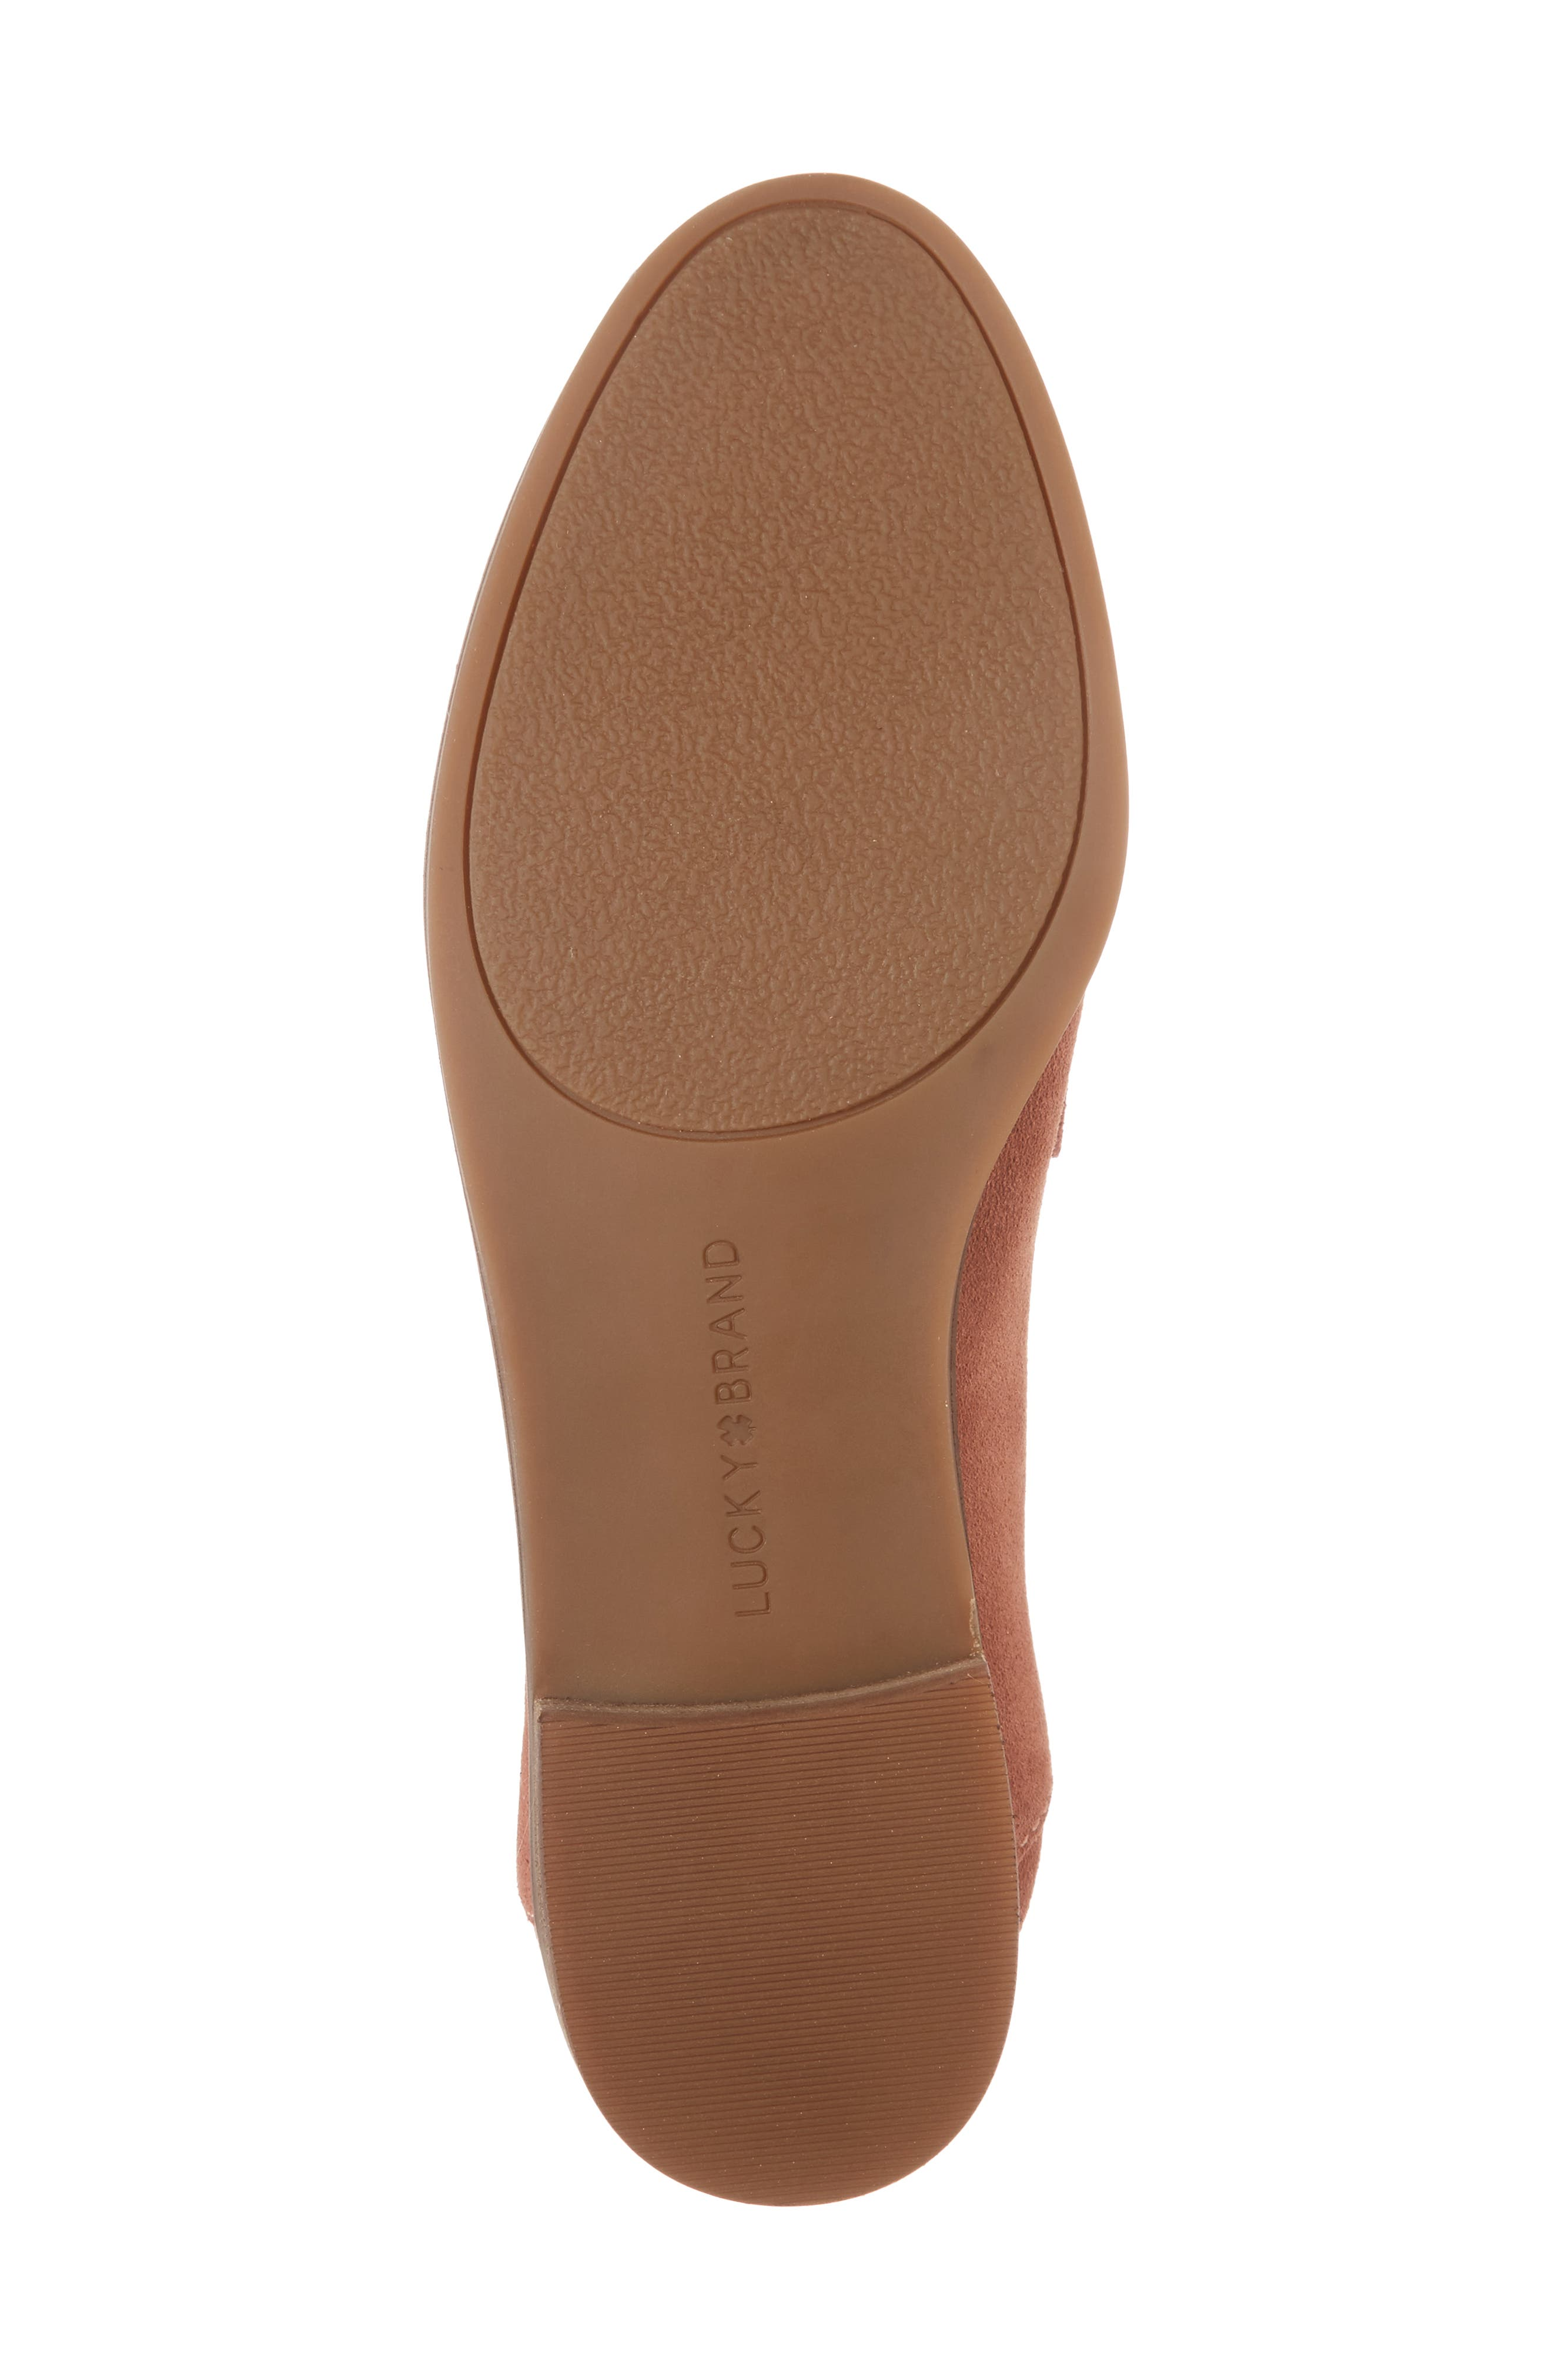 Callister Loafer,                             Alternate thumbnail 6, color,                             Canyon Rose Suede